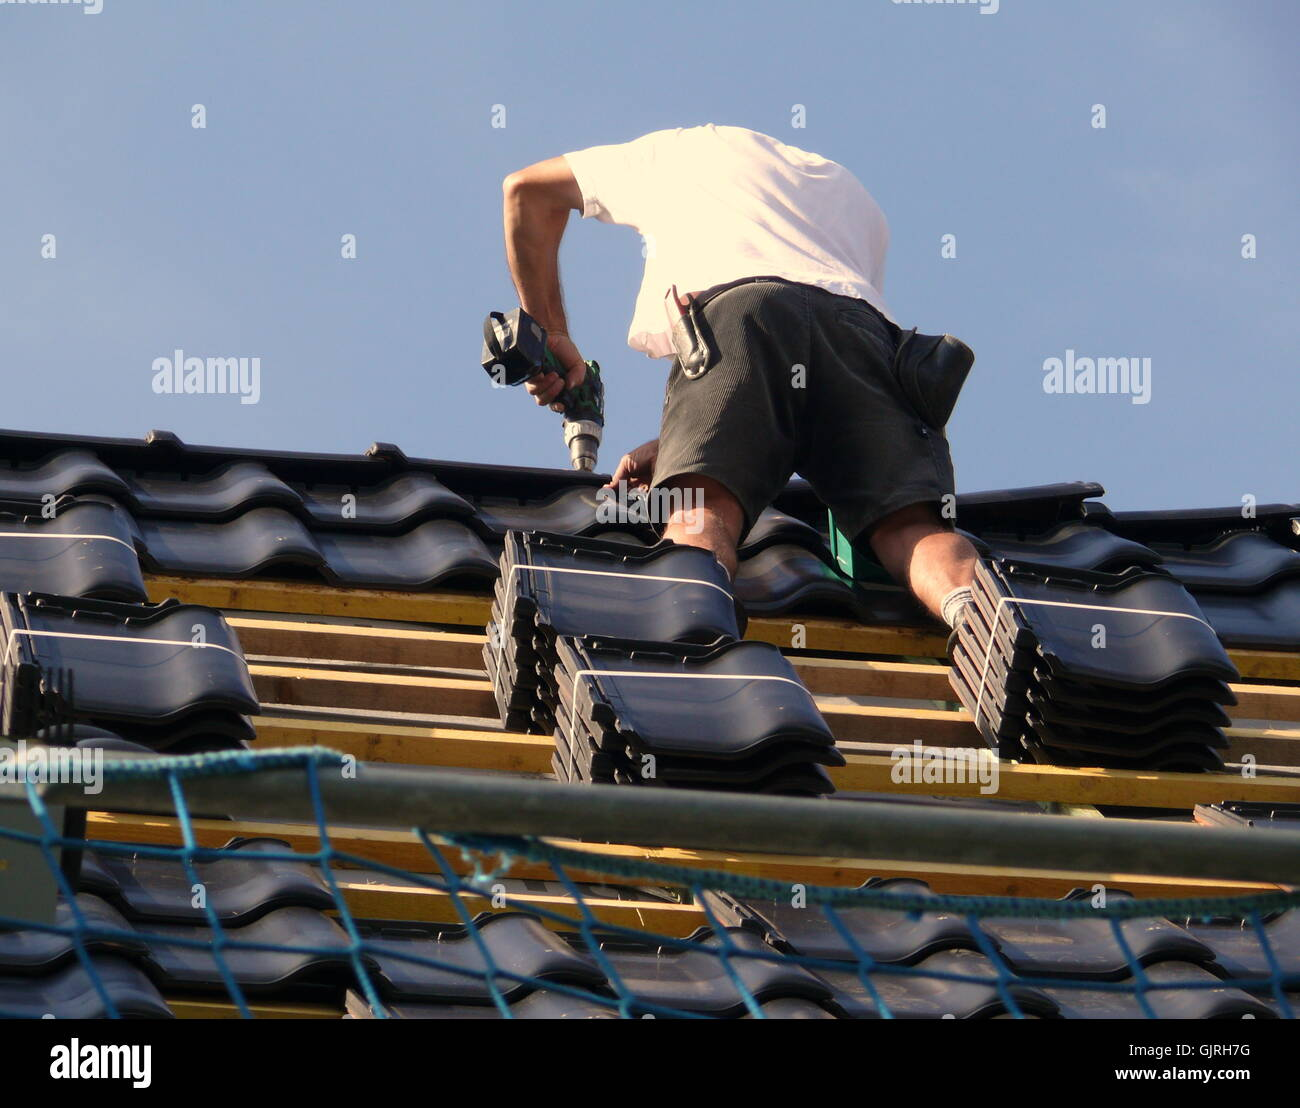 Roof Bolt Stock Photos Amp Roof Bolt Stock Images Alamy